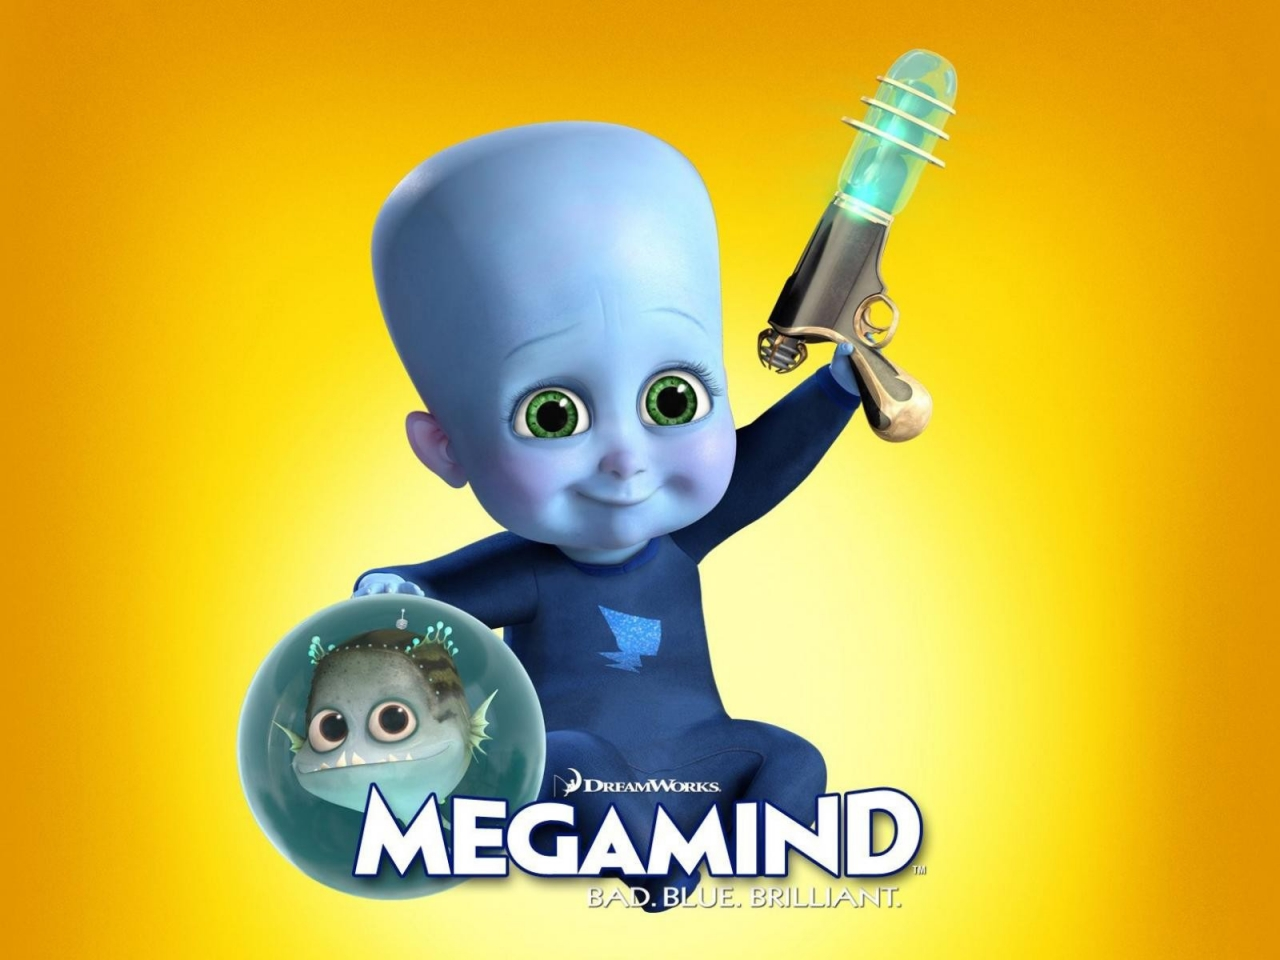 Megamind Child for 1280 x 960 resolution